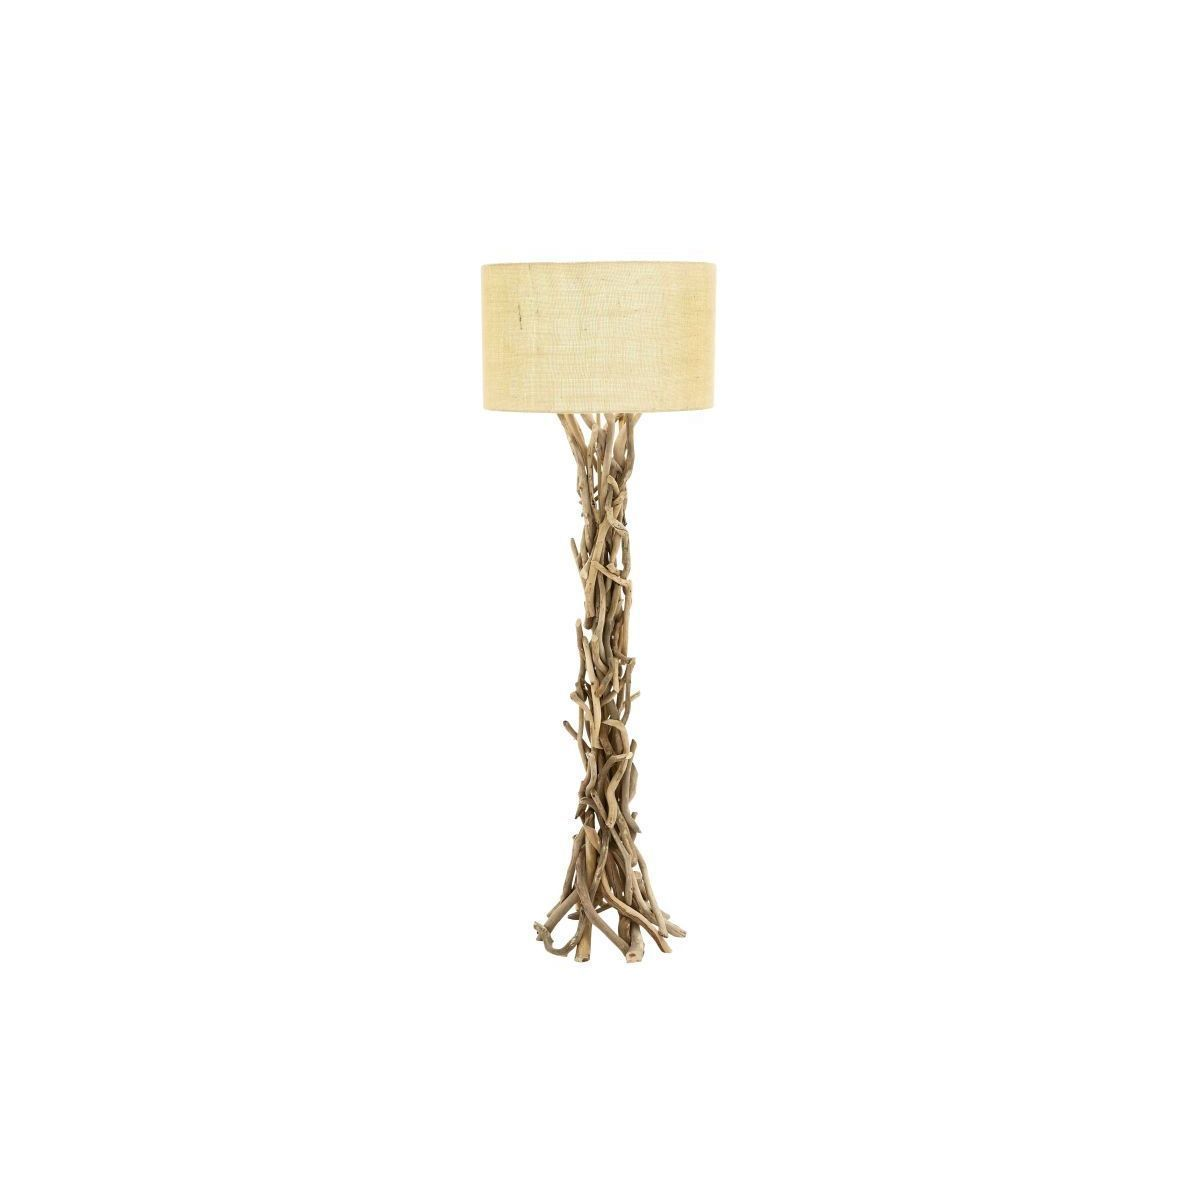 lamp diy floor dsc driftwood journey creative